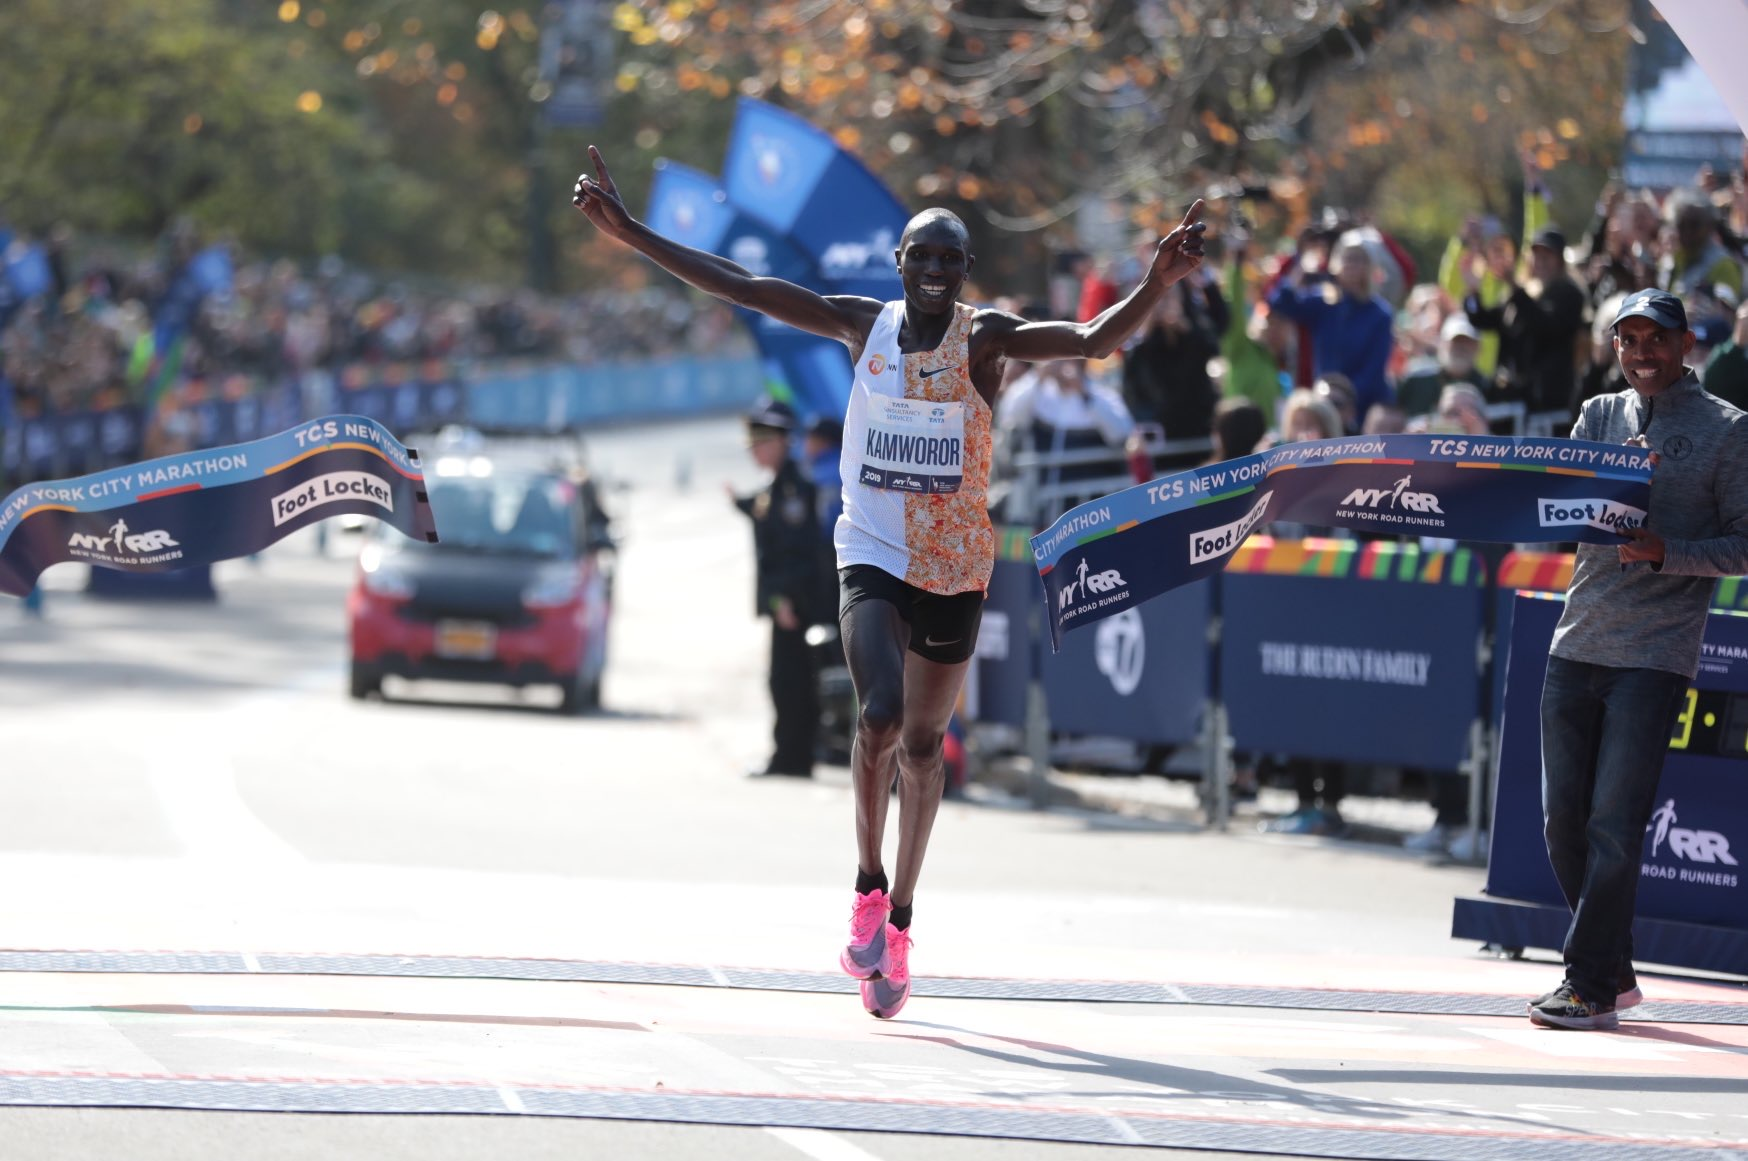 Geoffrey Kamworor winning the 2019 TCS New York City Marathon.